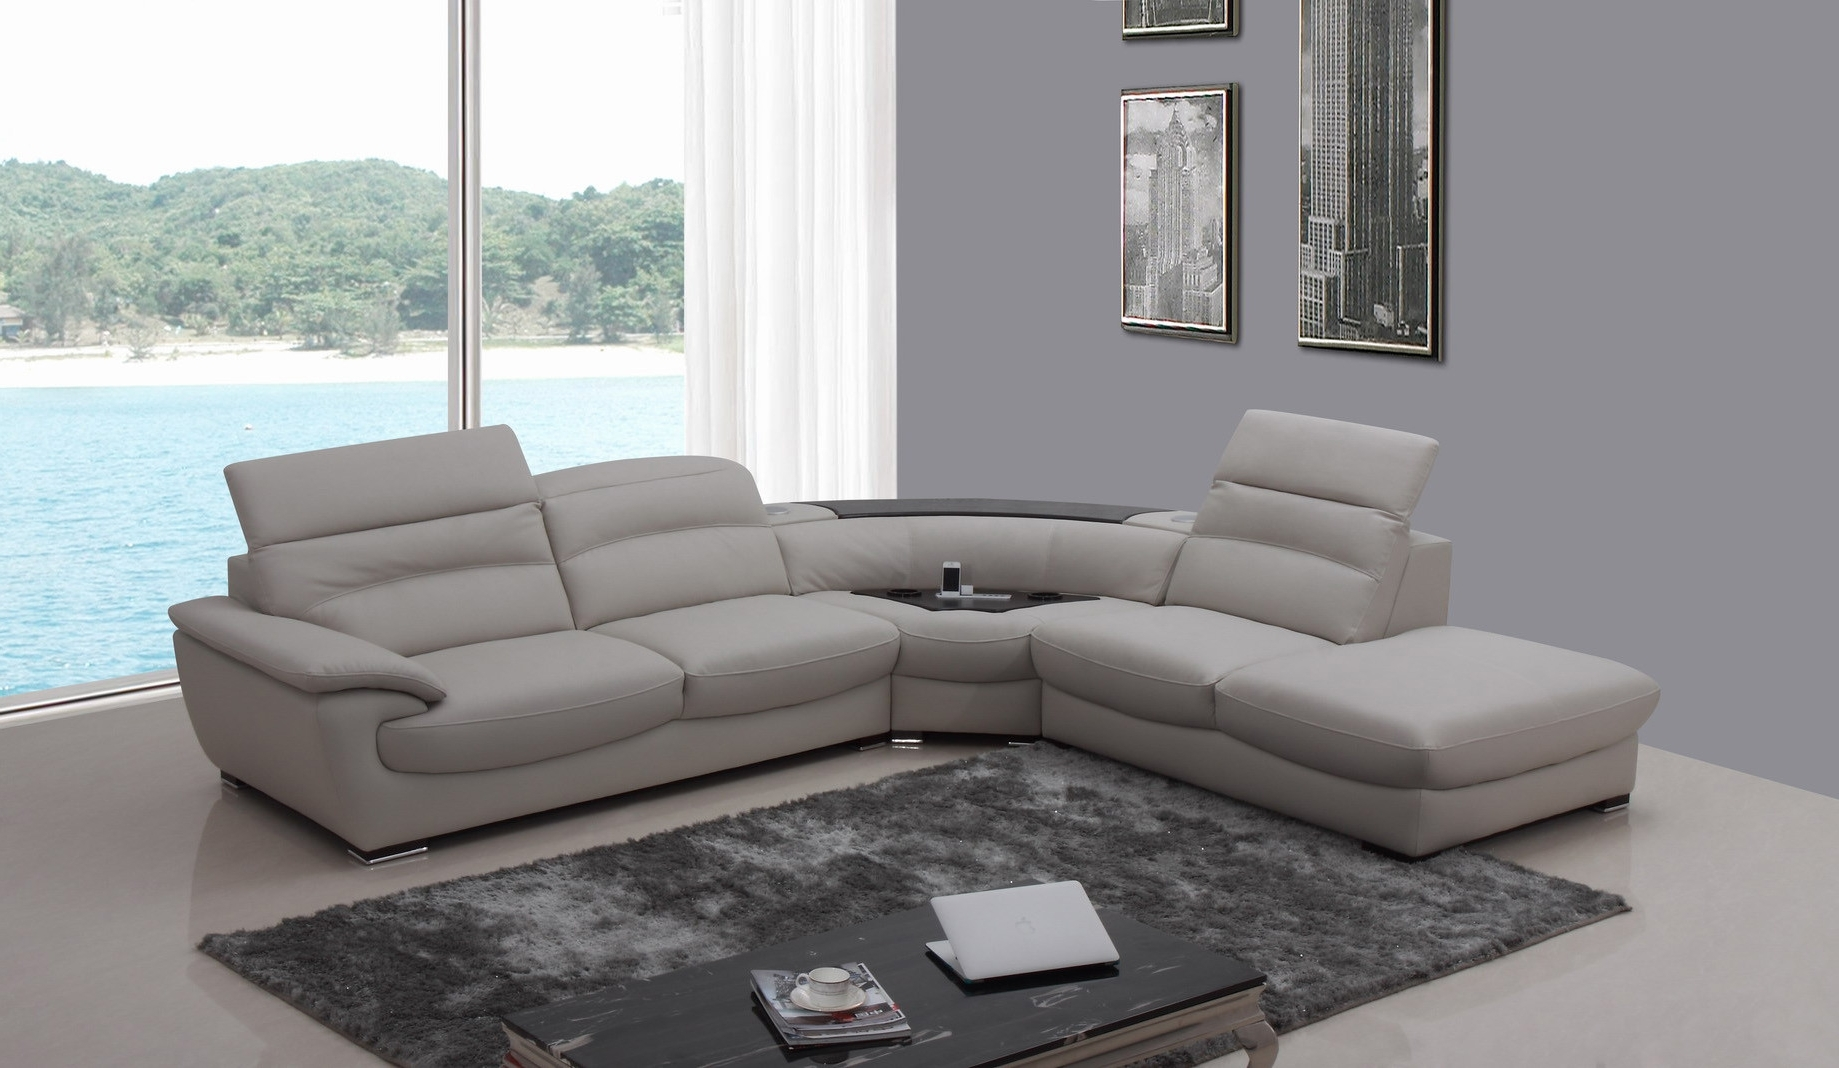 Well Liked Casa Miracle Modern Light Grey Italian Leather Sectional Sofa Regarding Miami Sectional Sofas (View 10 of 15)